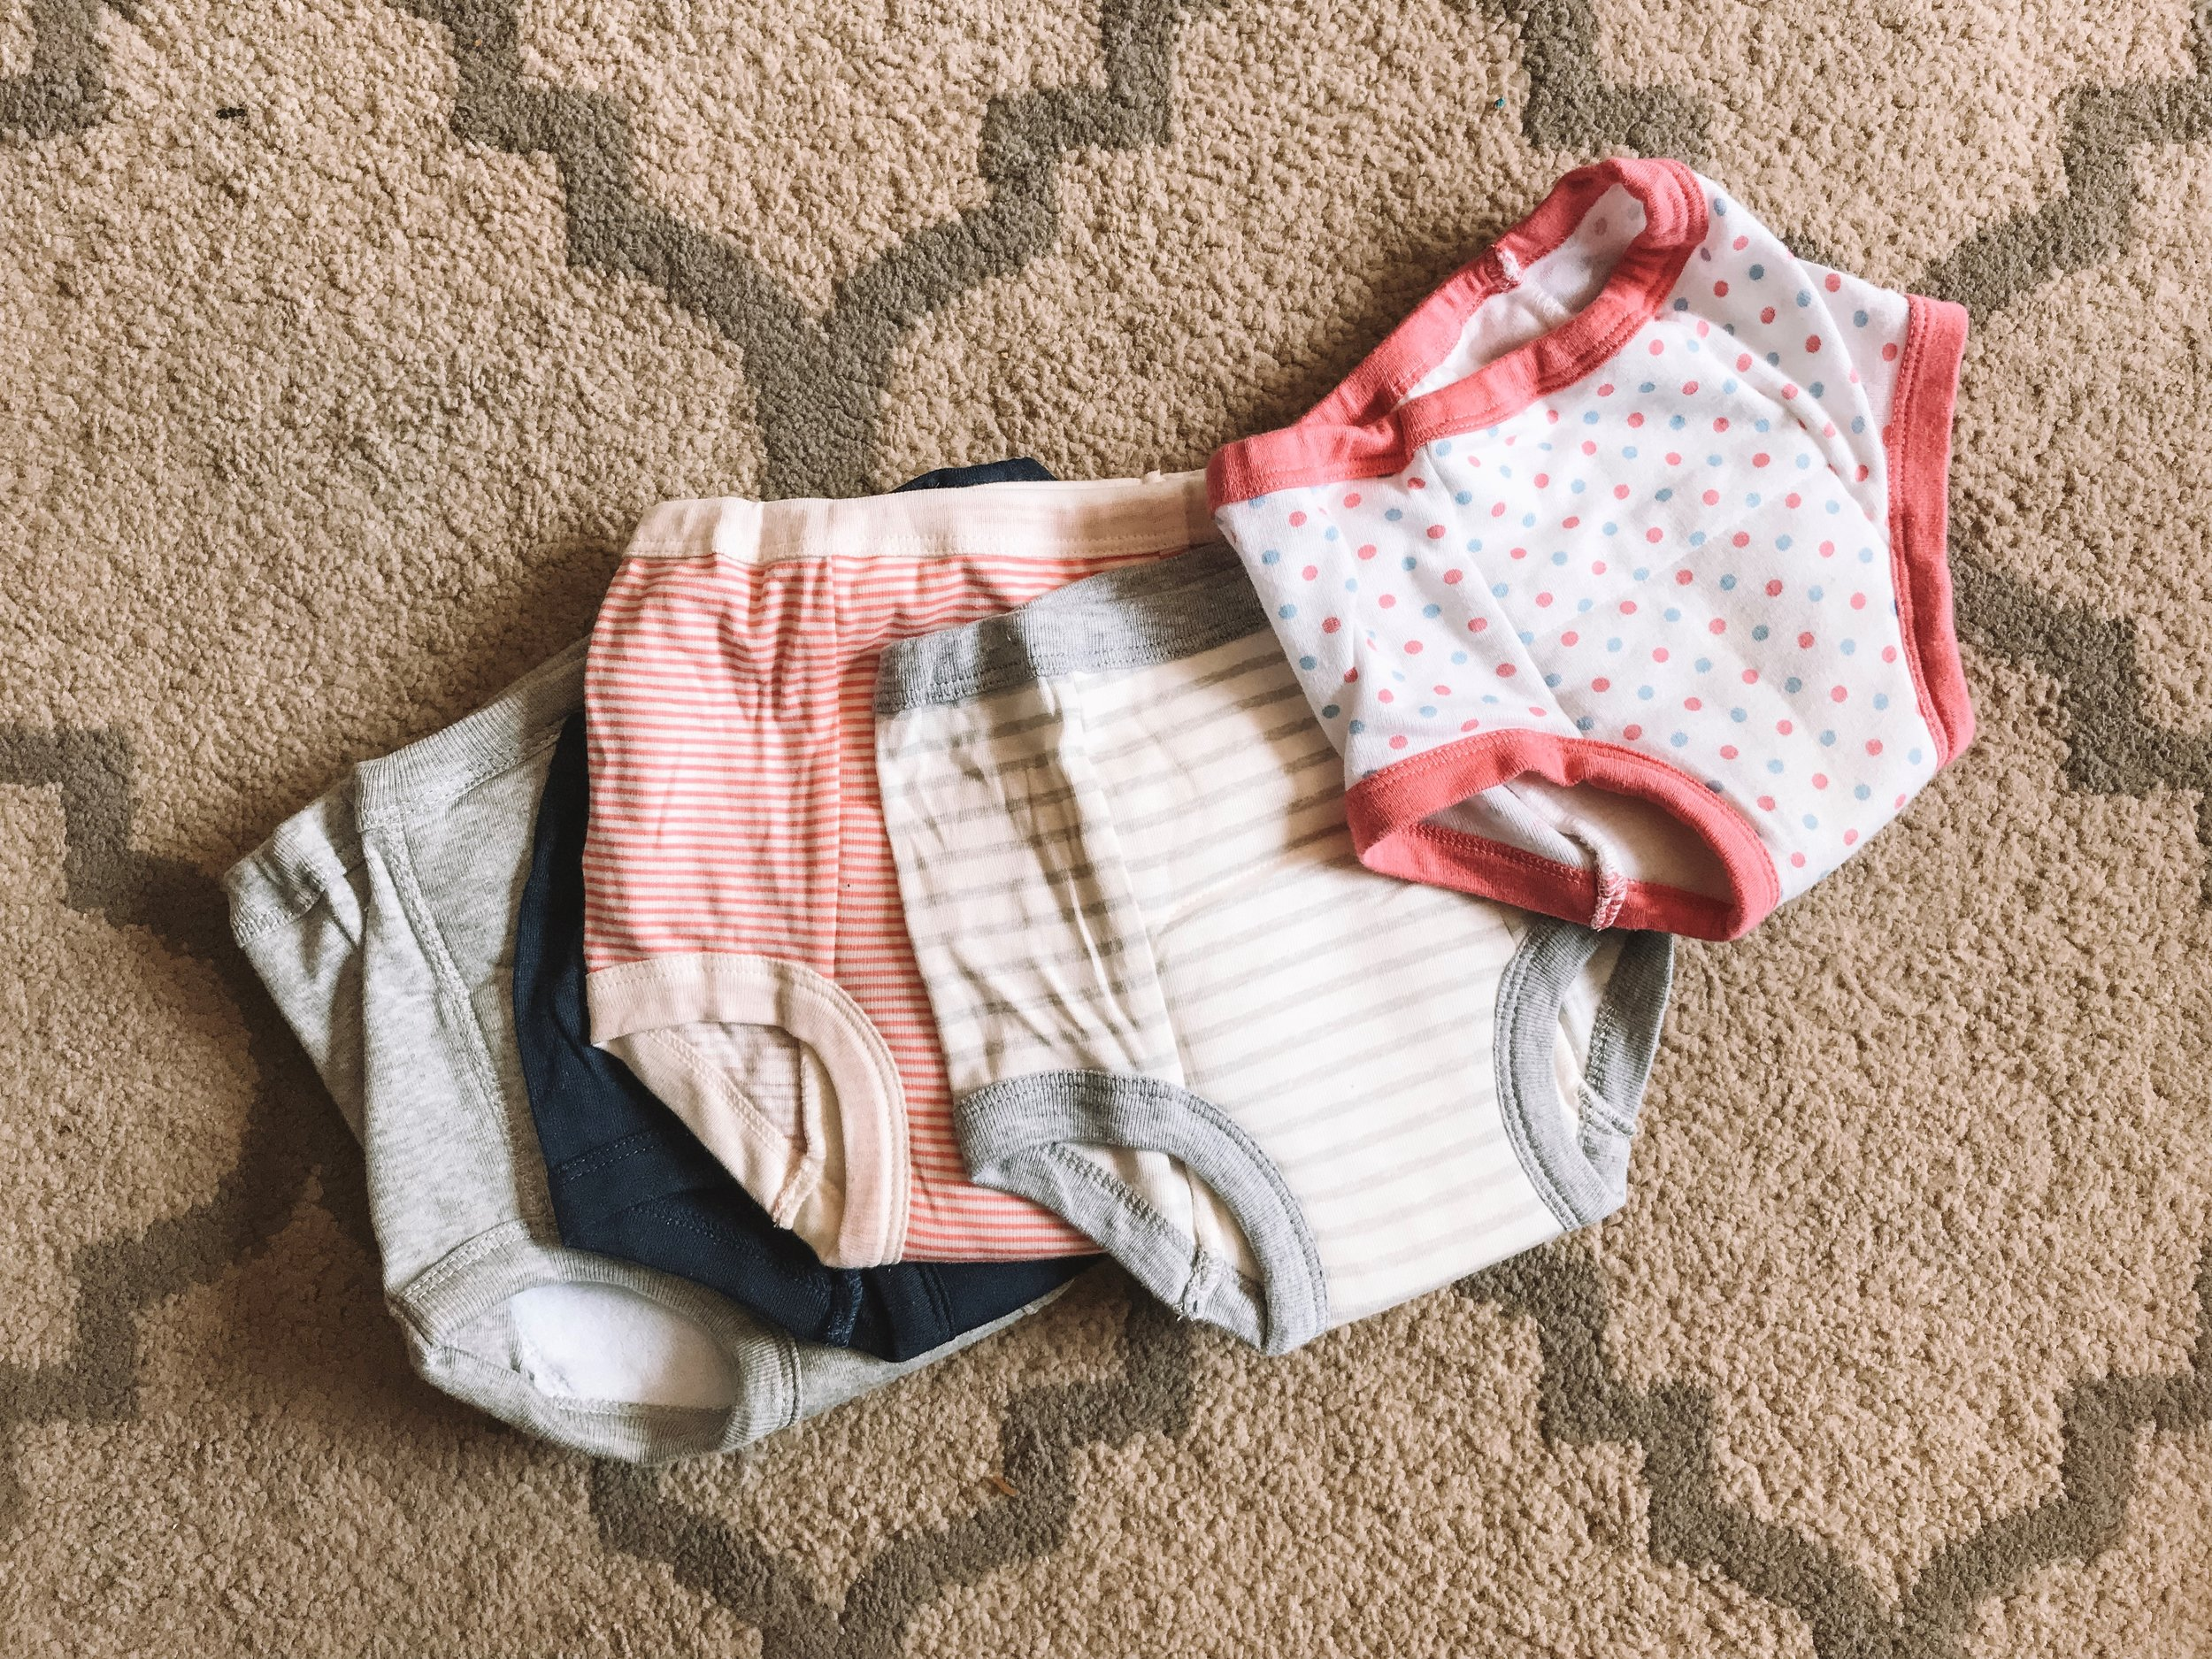 Potty Training Tips for 2 Year Olds - The Overwhelmed Mommy Blogger